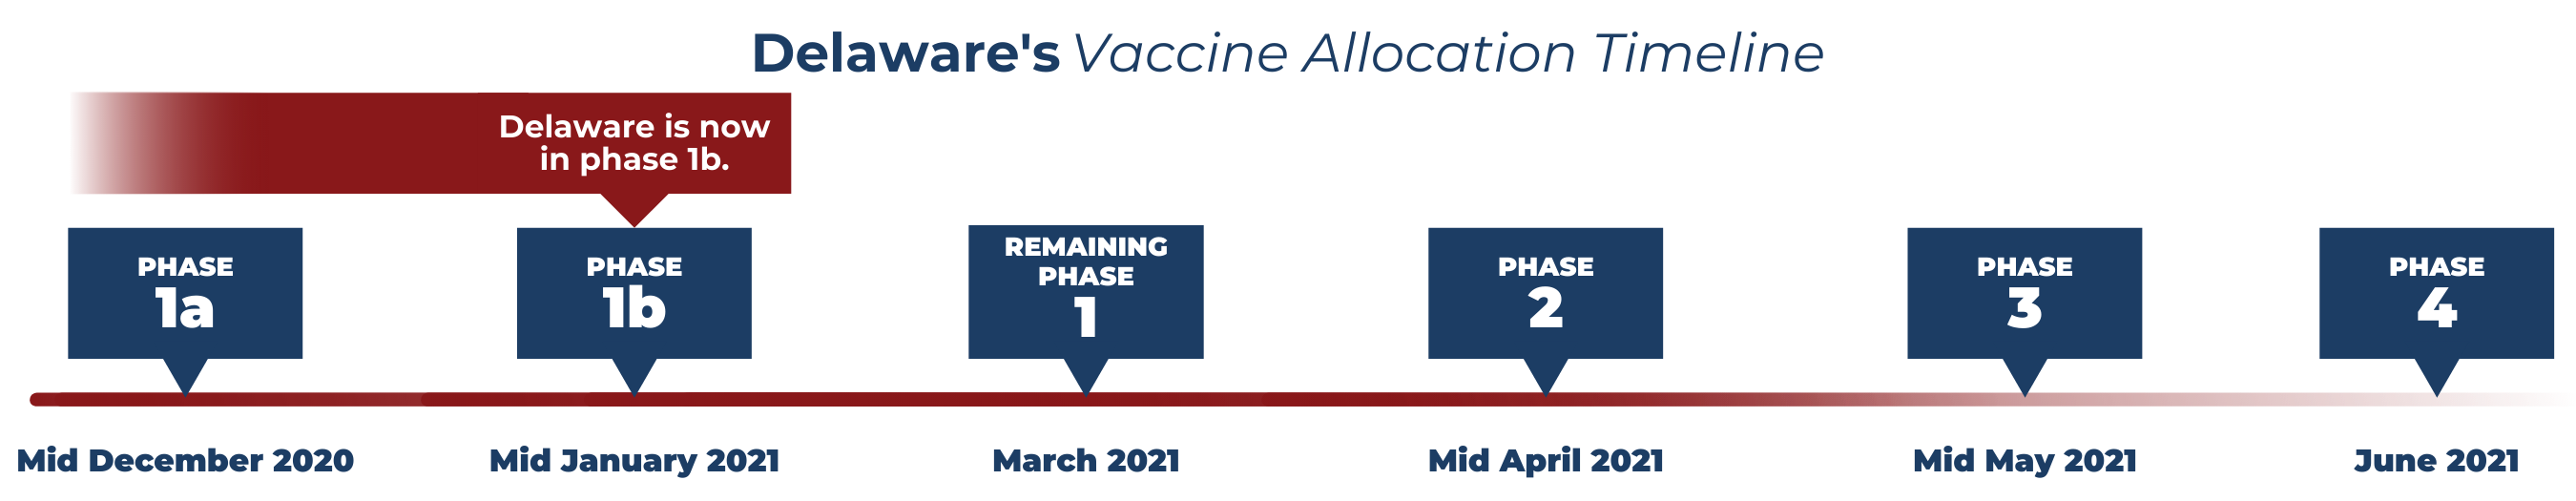 Vaccine Timeline - Current Phase 1B.